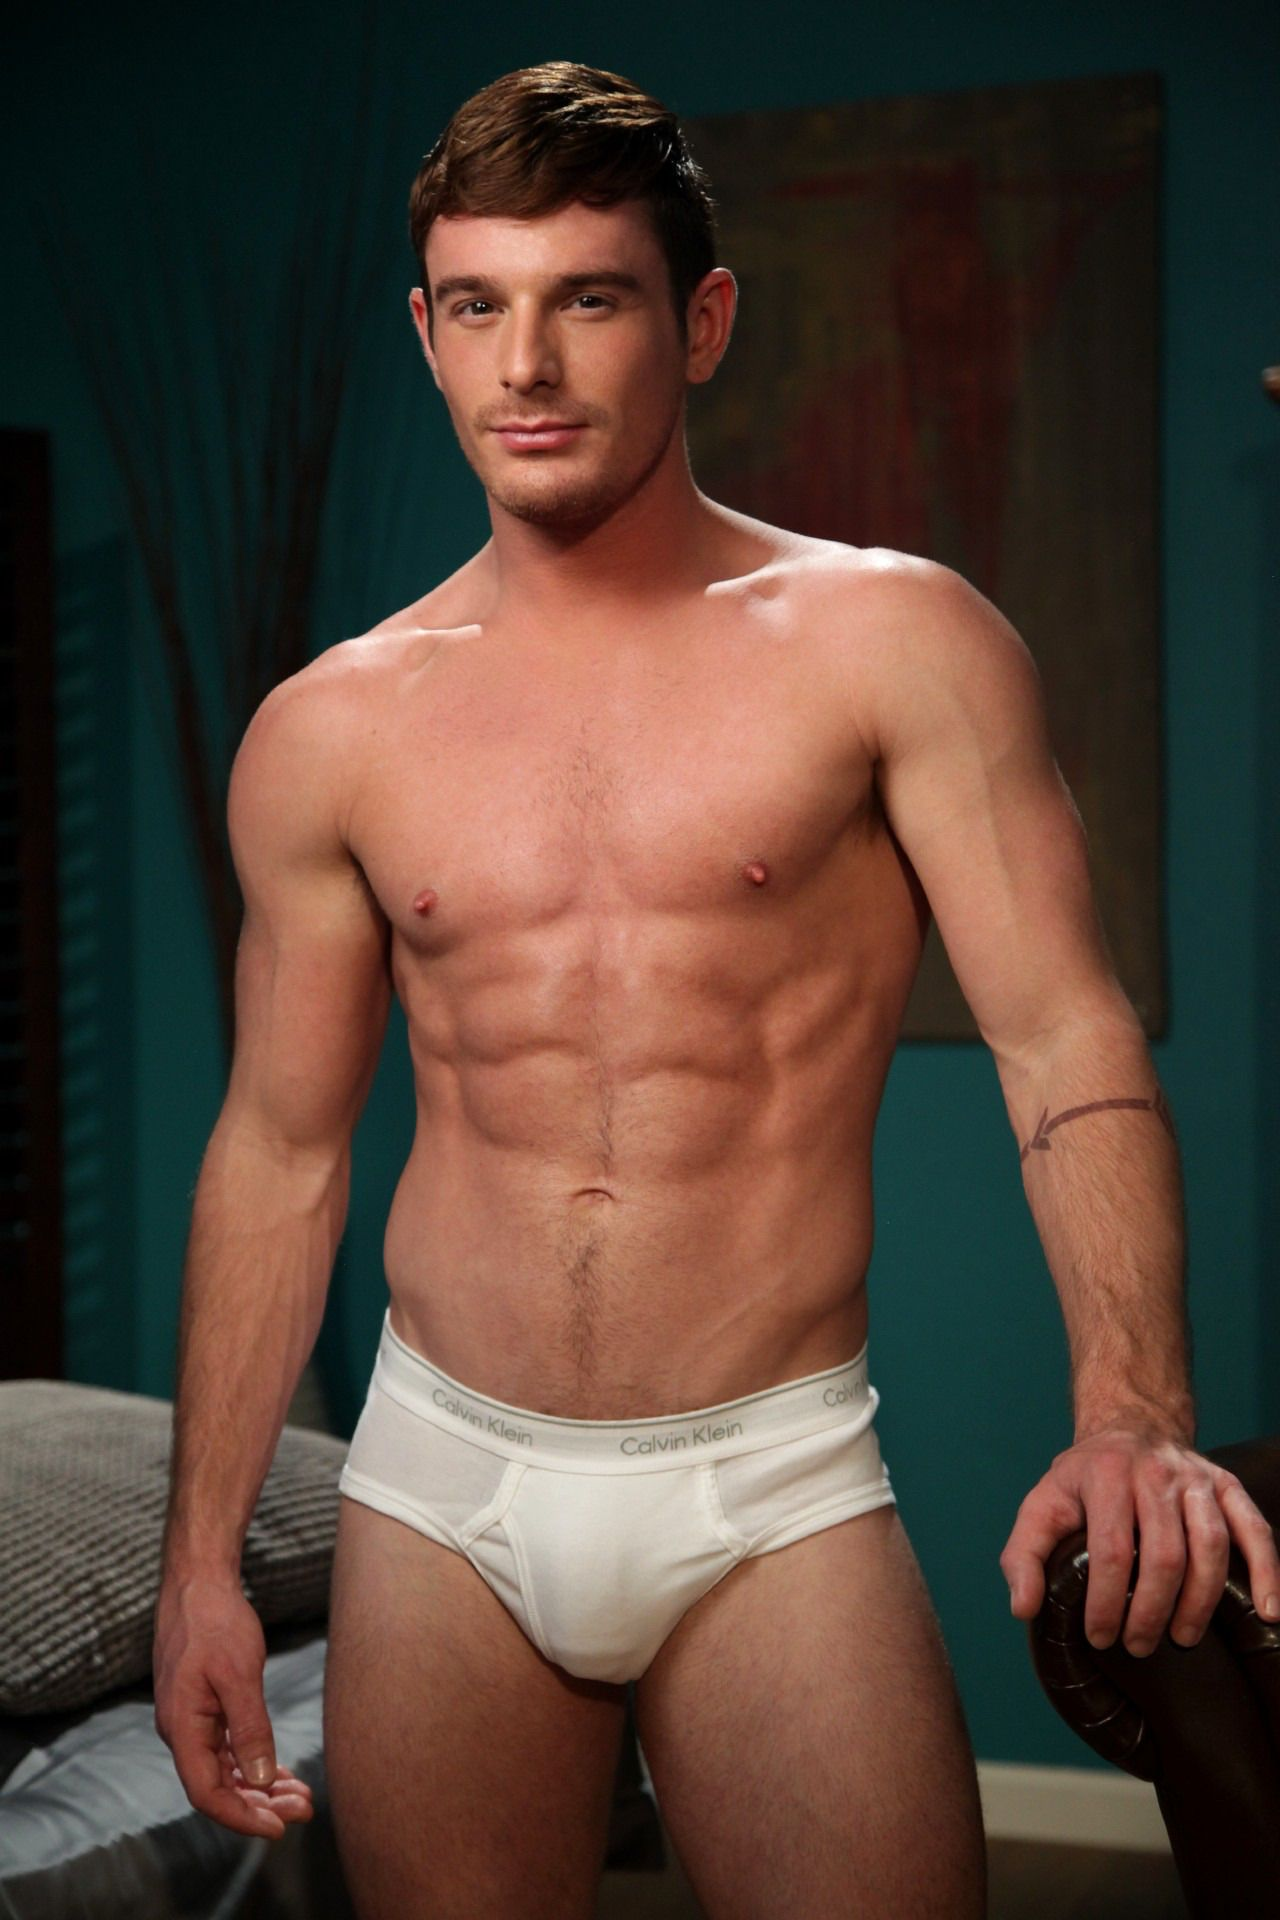 Brent corrigan dick